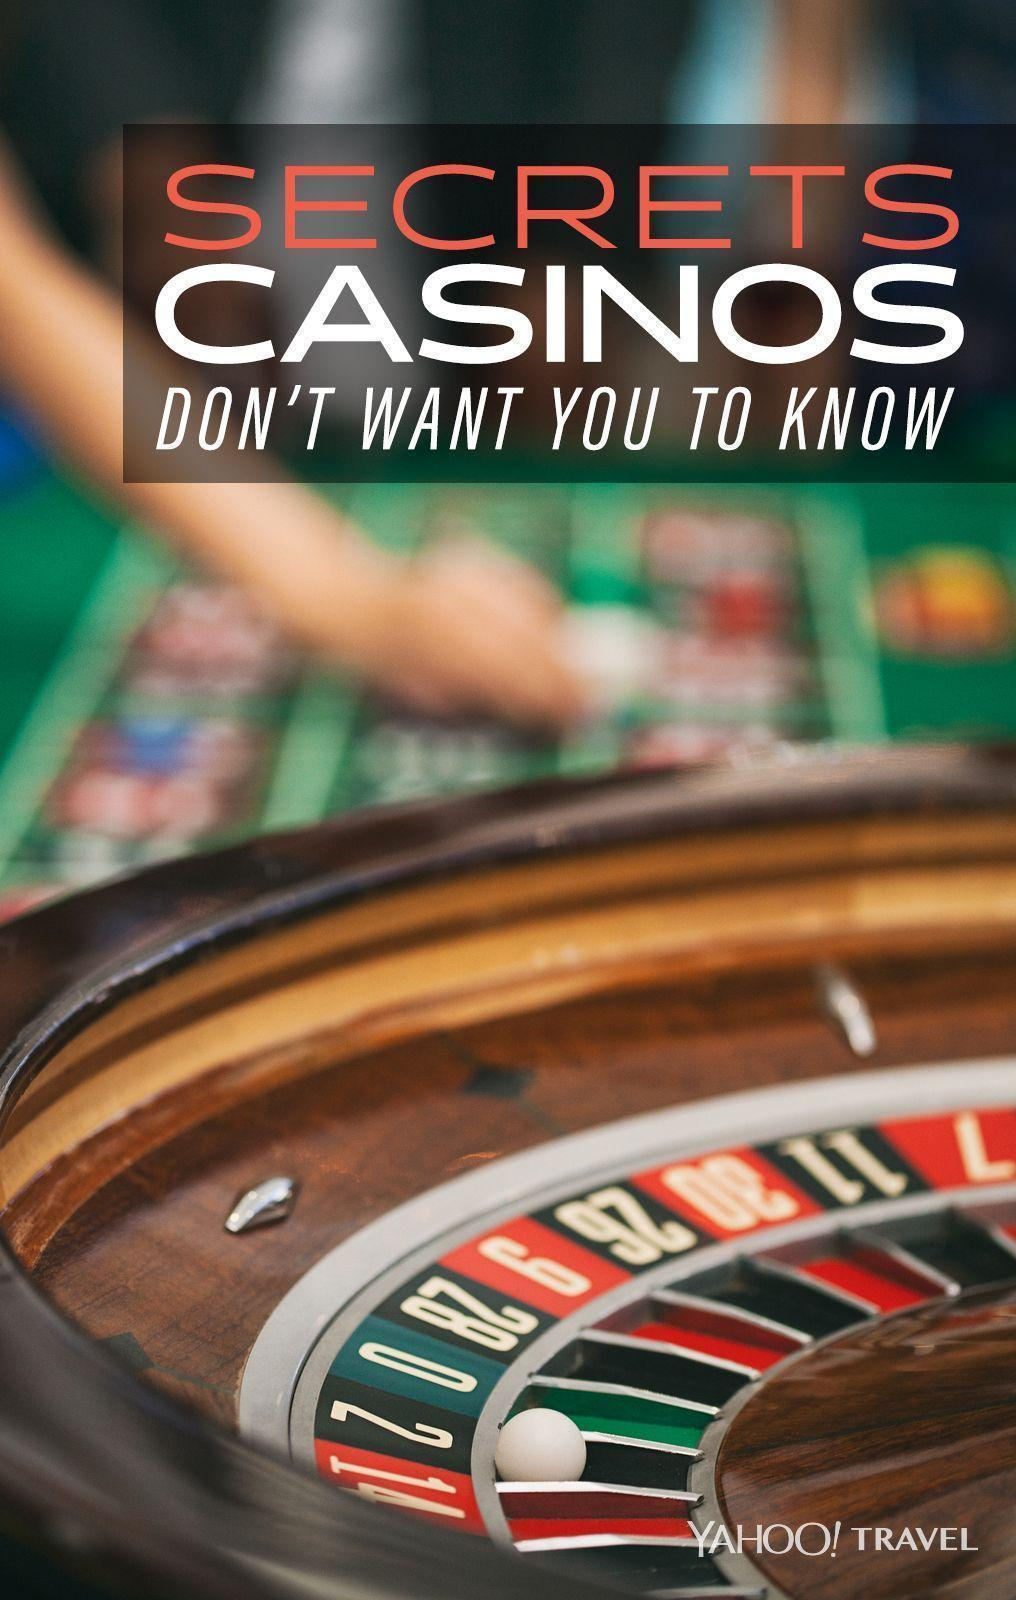 Top 10 Secrets Casinos Don't Want You to Know